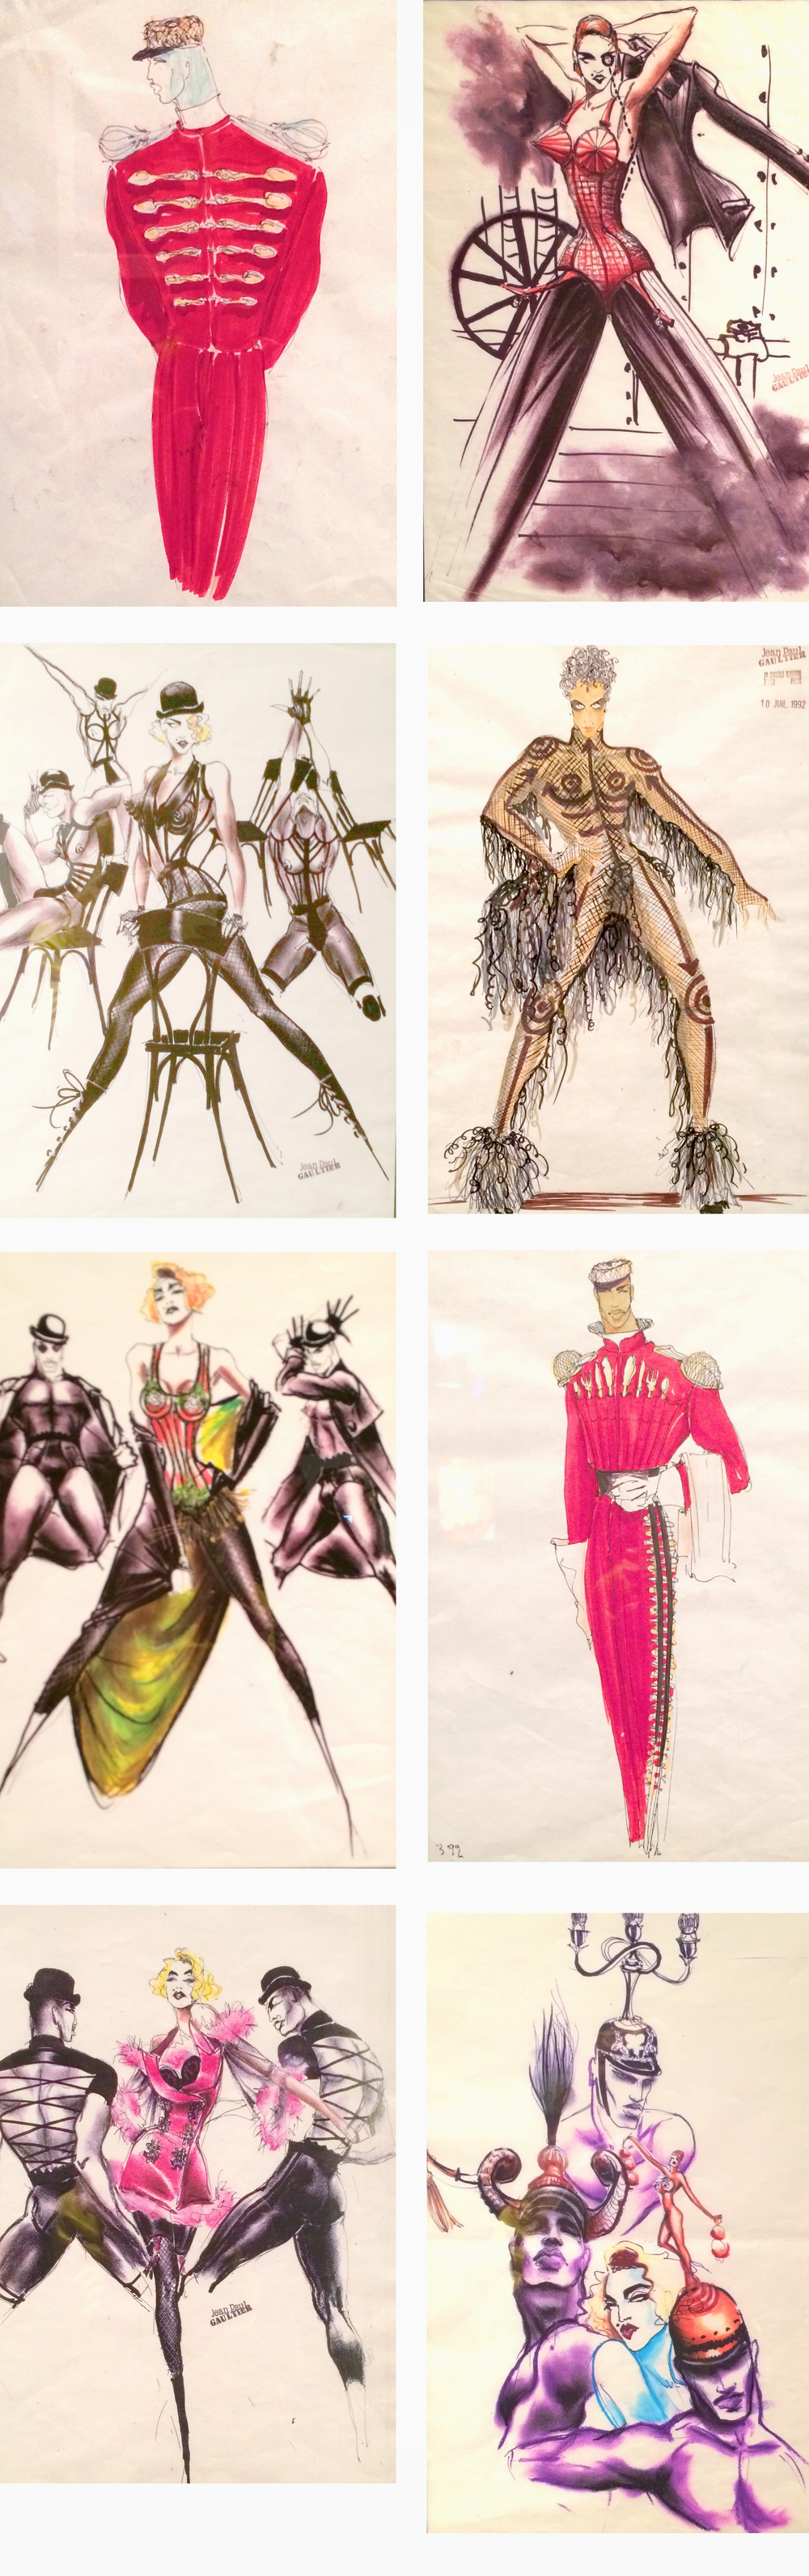 Of course I had to take photos of all his fashion illustrations. I noticed he doesn't draw feet. Interesting.